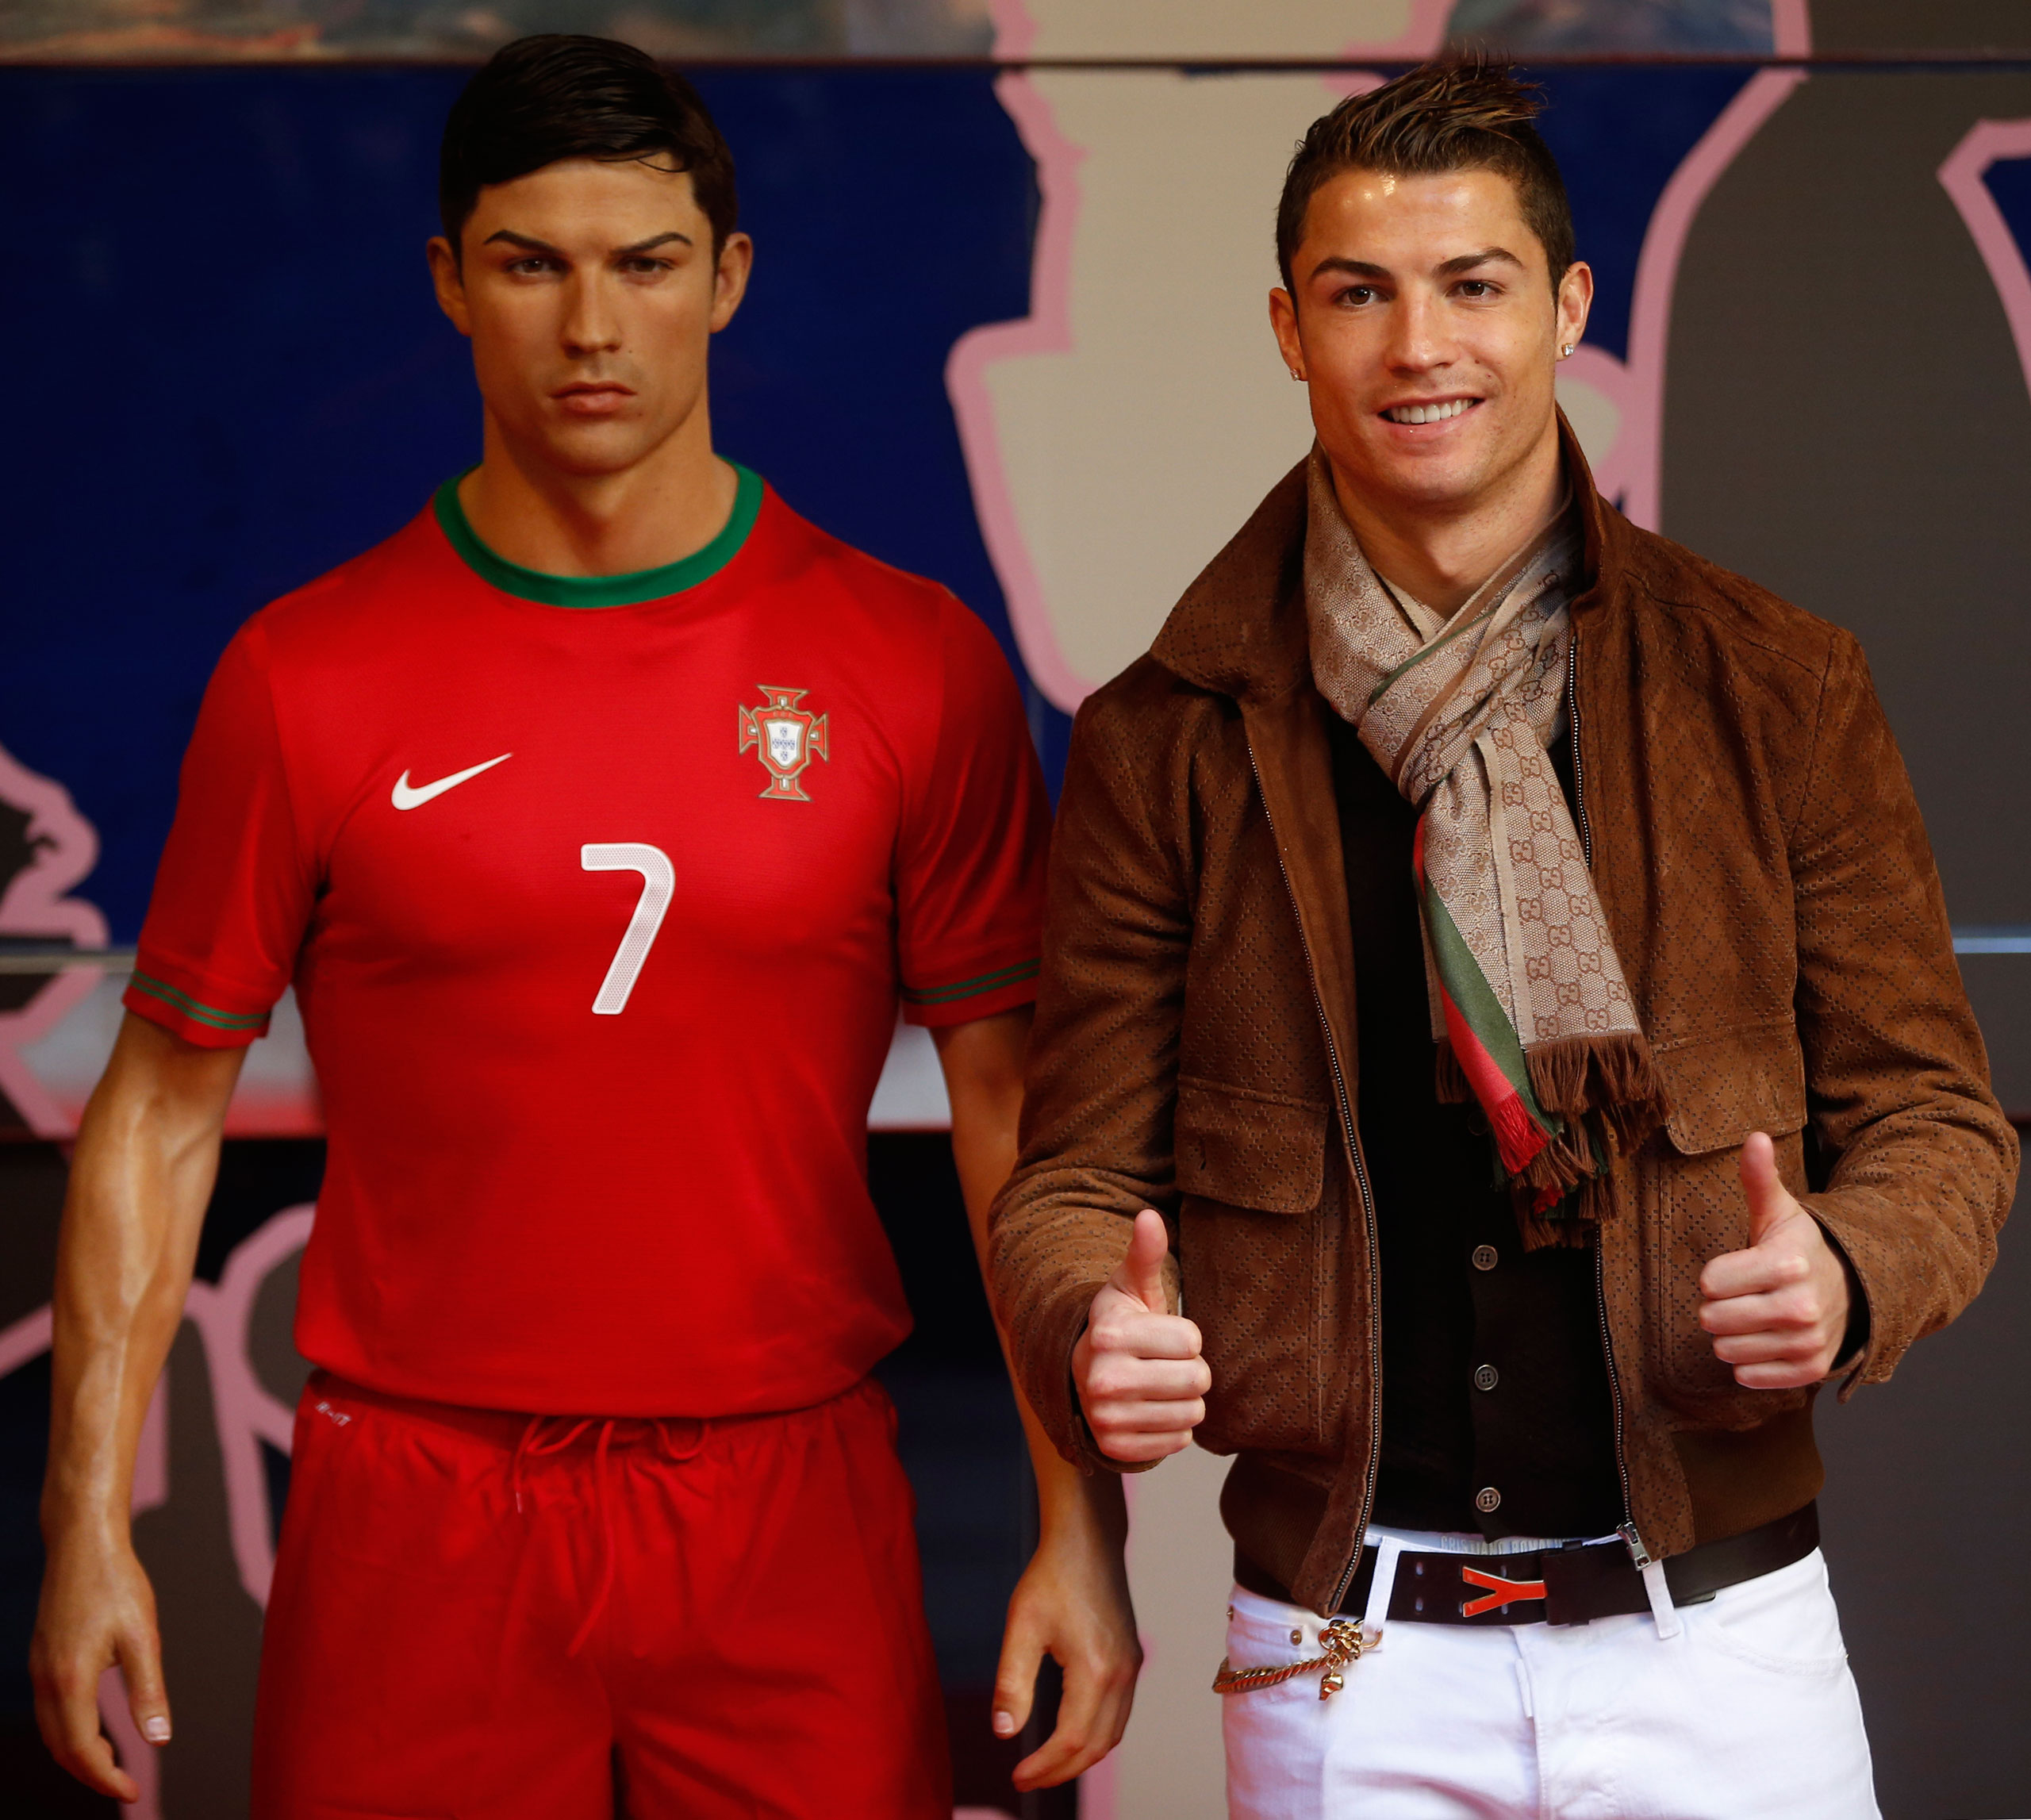 Cristiano Ronaldo, right, poses with his wax statue after an unveiling ceremony at the Madrid Wax Museum on Dec. 7, 2013.